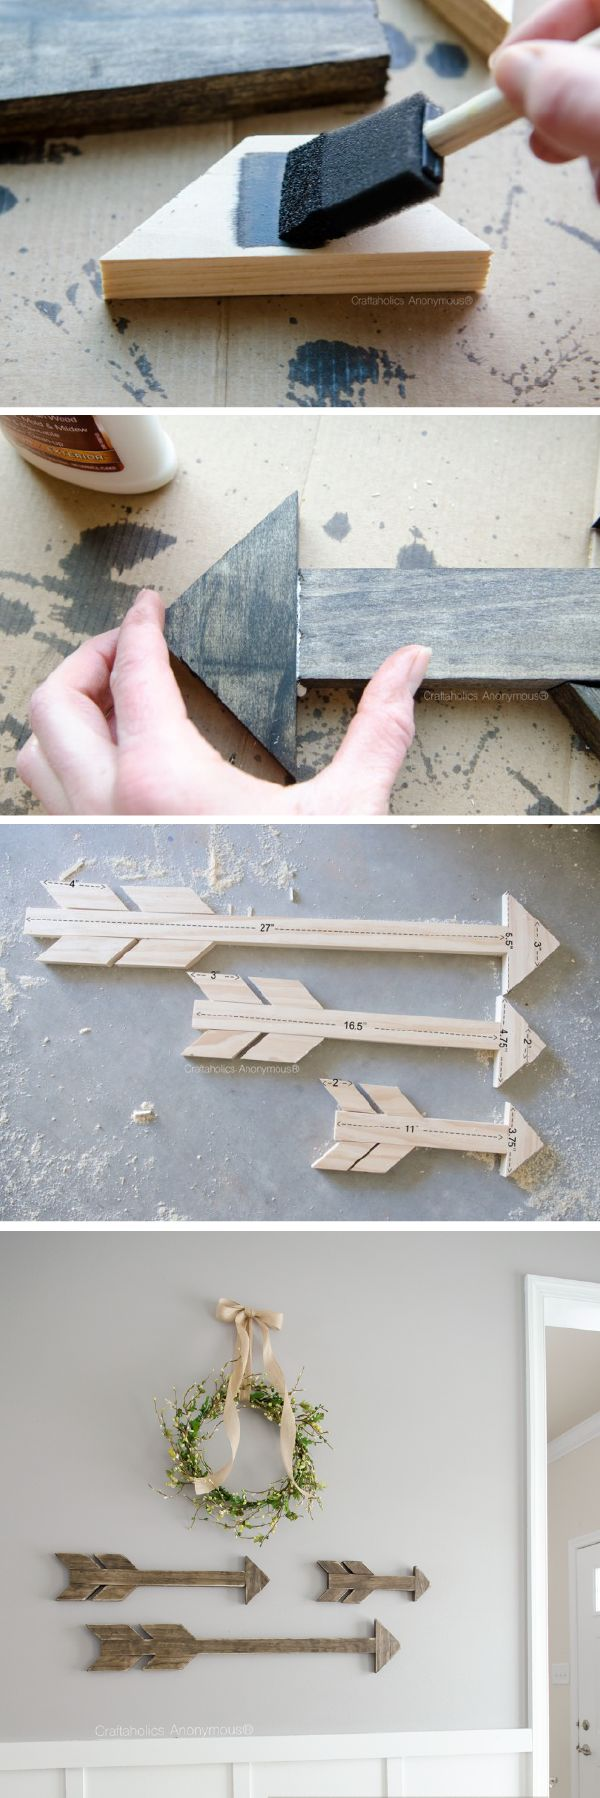 Best 25 easy woodworking projects ideas on pinterest easy wood how to make wood arrows tutorial homemade home decorhomemade wall amipublicfo Image collections